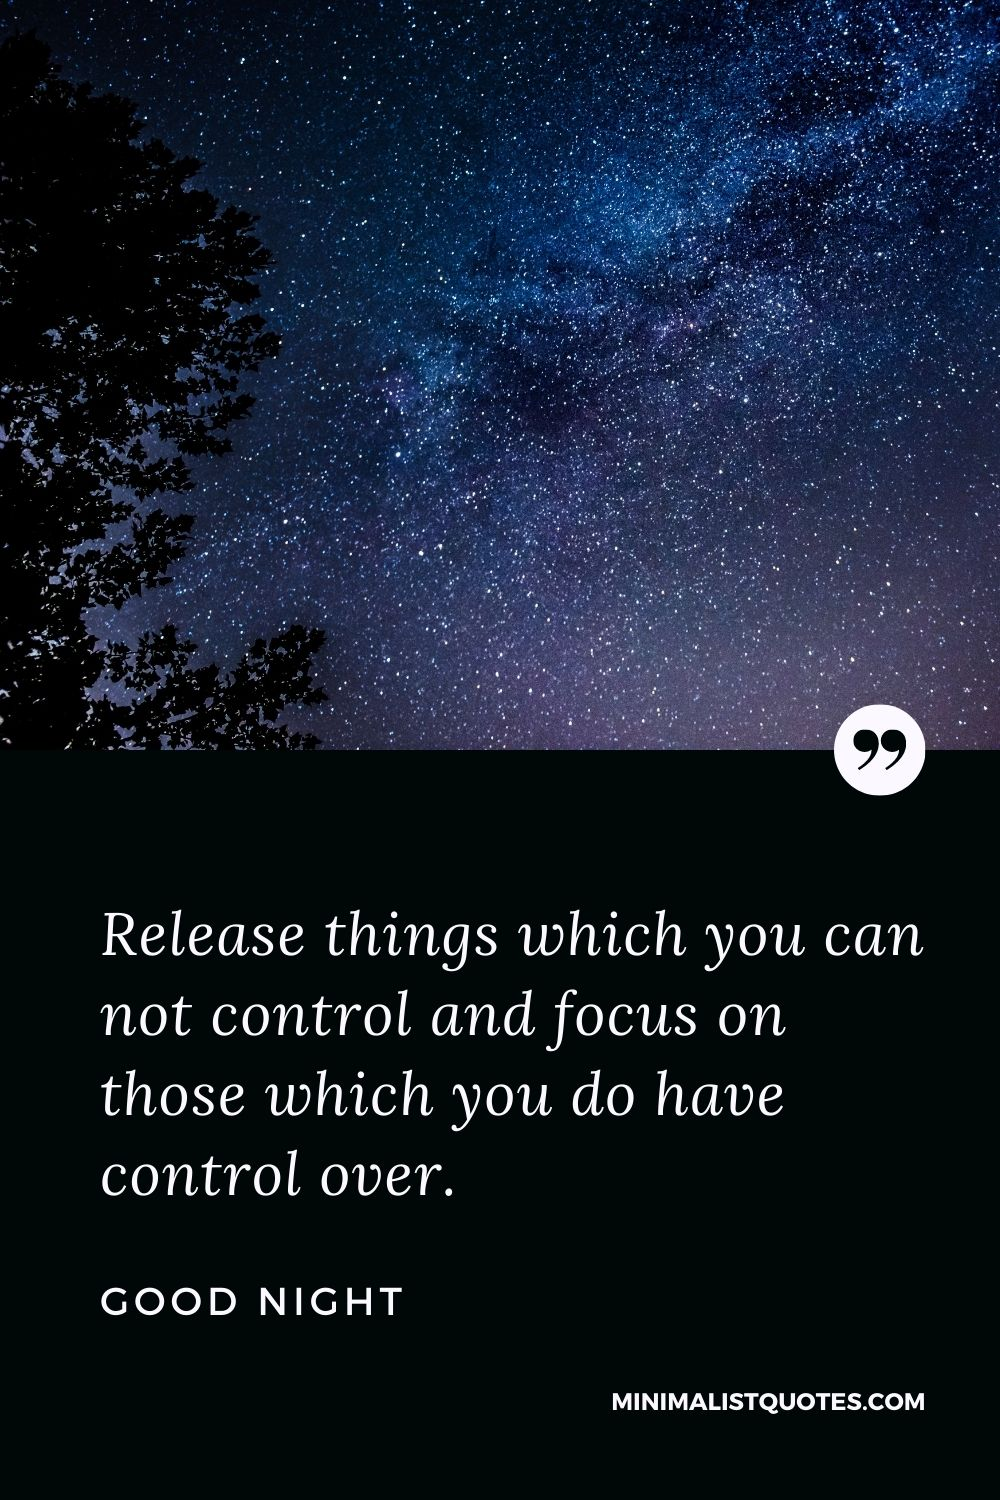 Good Night Wishes - Release things which you can not control and focus on those which you do have control over.